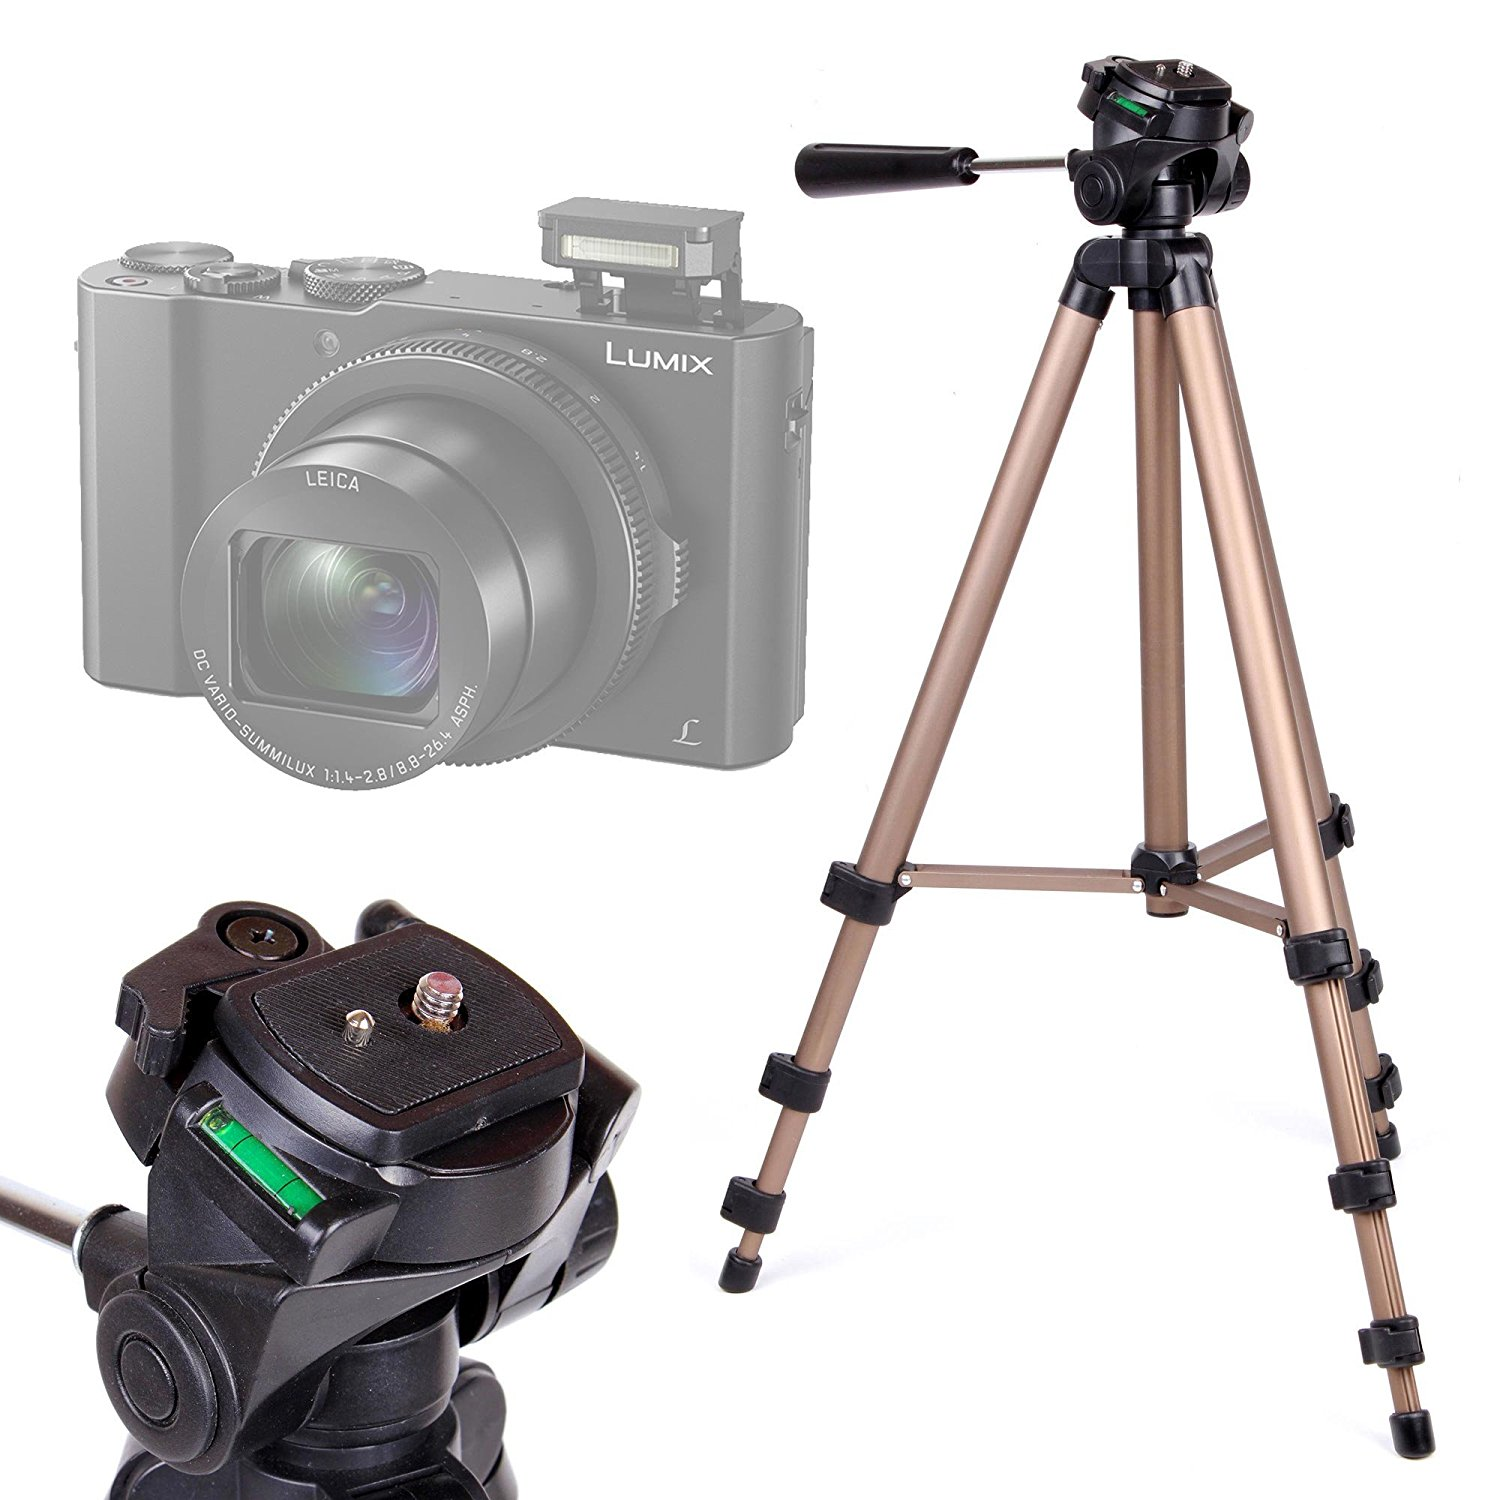 Buy Camera Tripod With Extendable Legs And Ball Tilt Head In Black Panasonic Lumix Dmc Lx10 Digital Gold For The